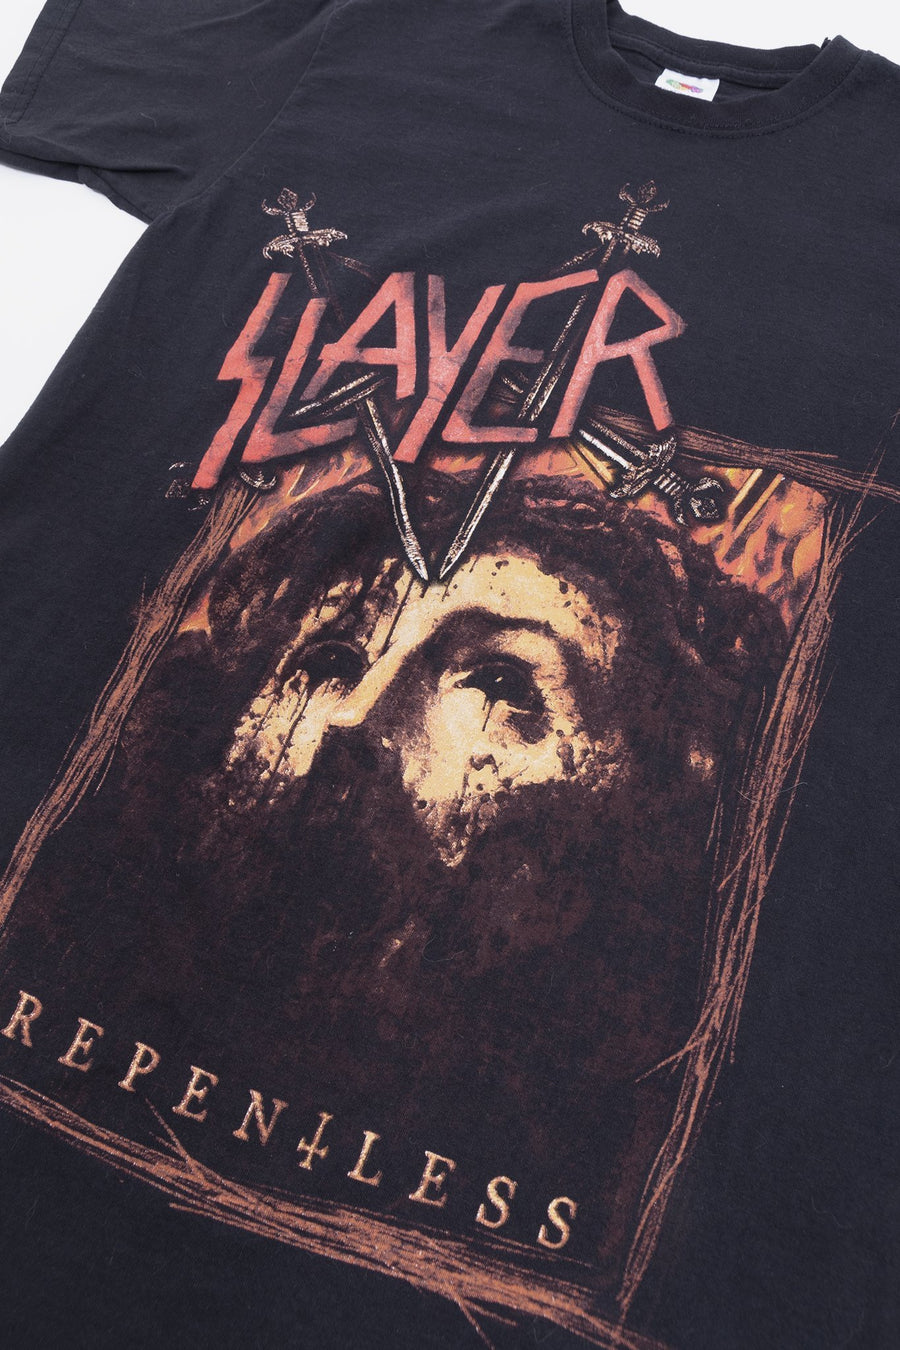 T-shirt Slayer - WASTED PARIS